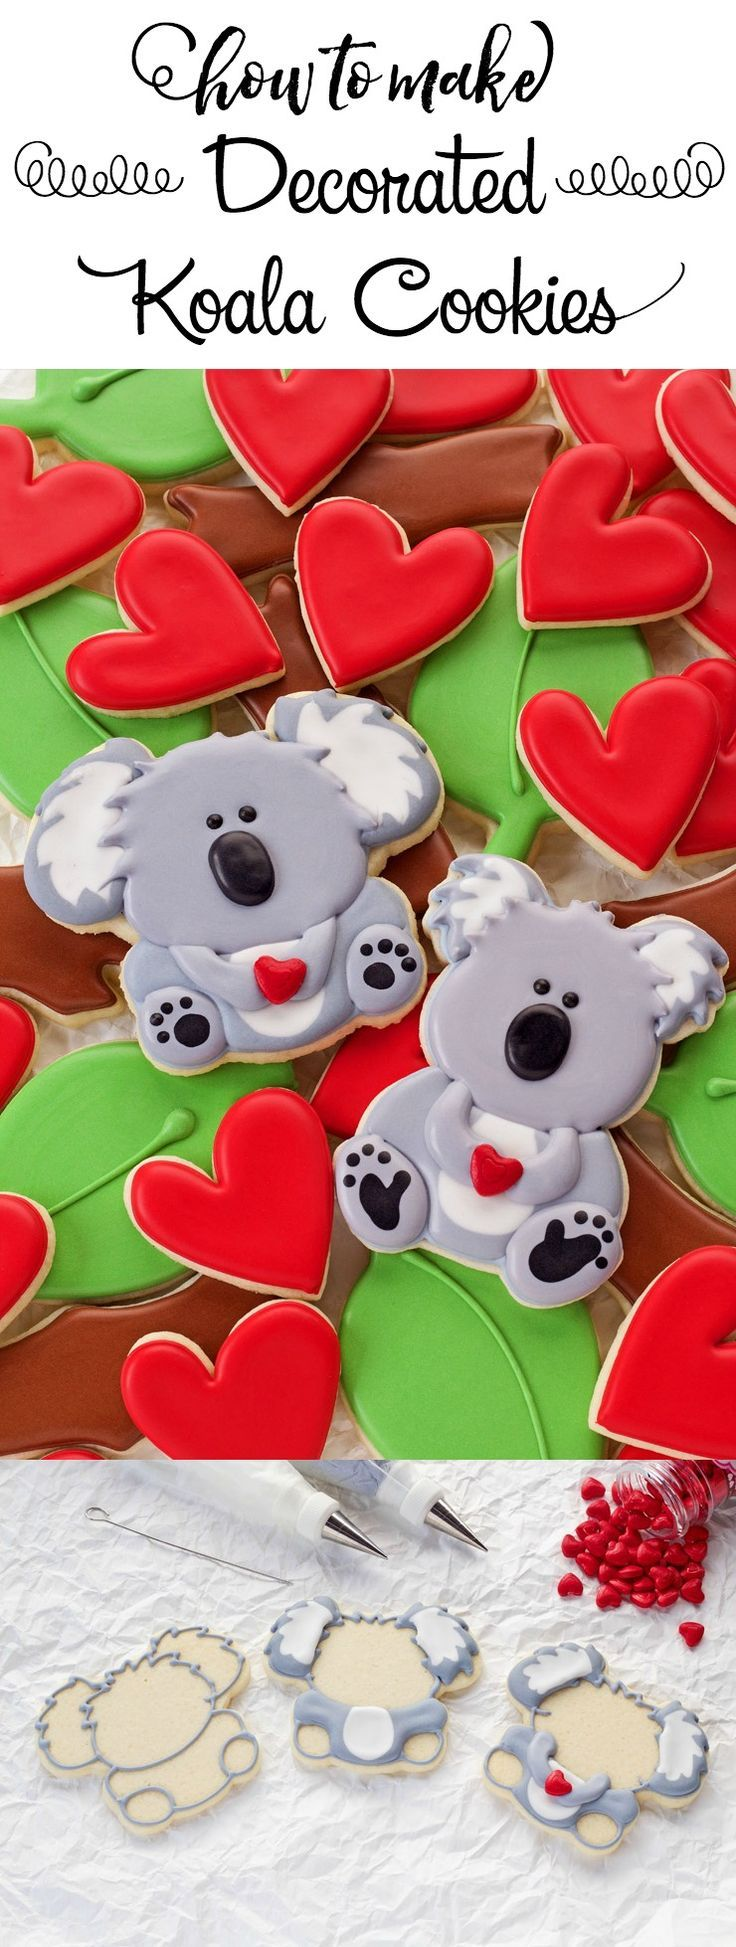 How to Make Simple Little Decorated Koala Cookies | The Bearfoot Baker